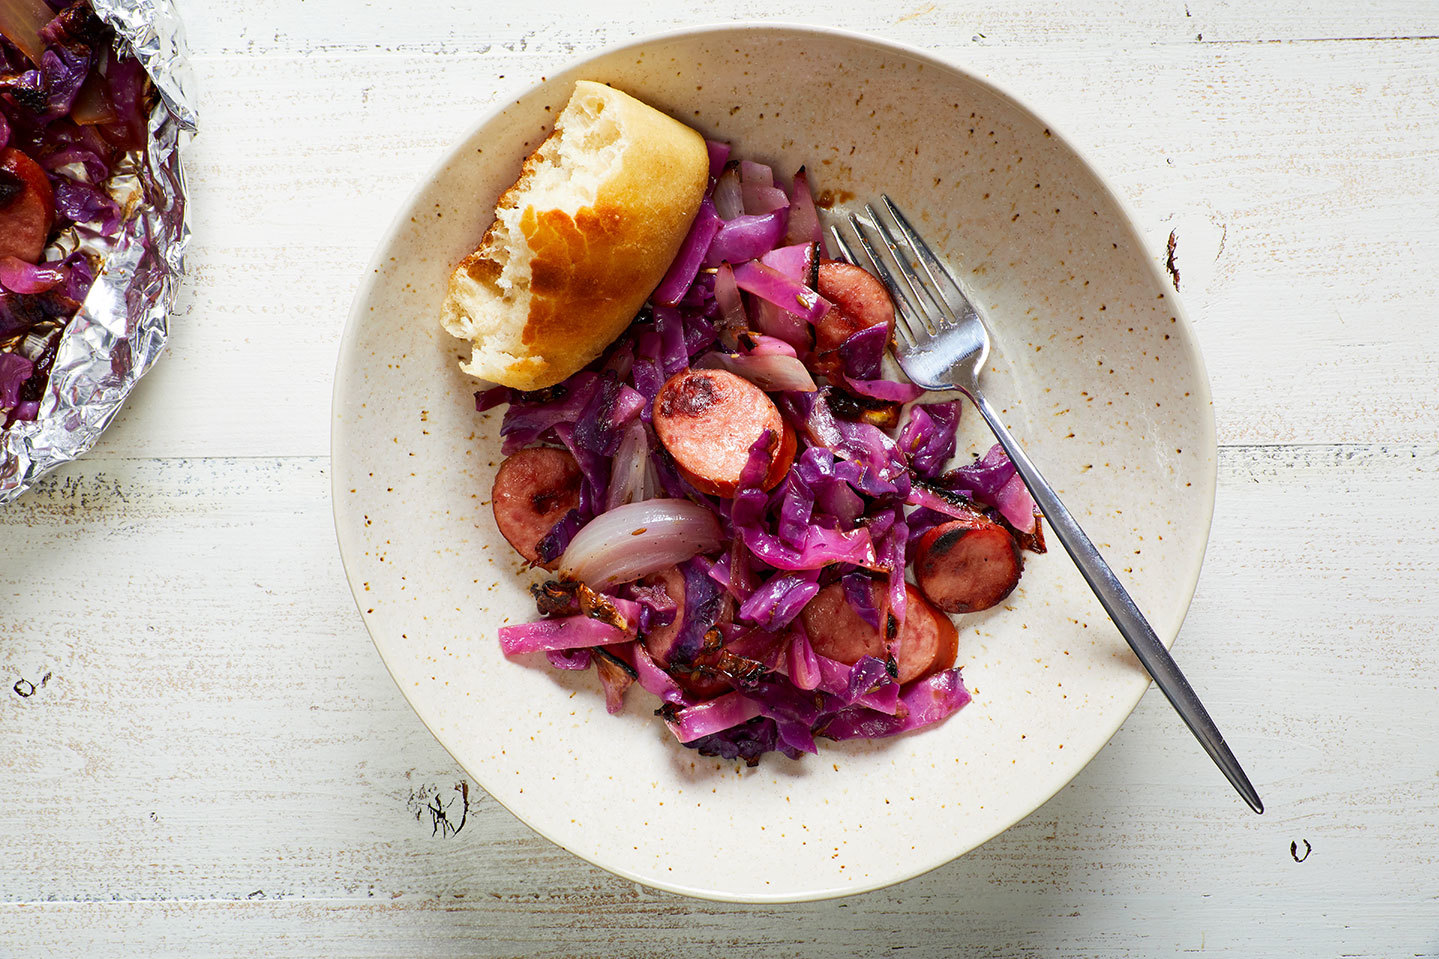 Sausage and cabbage foil packet dinner